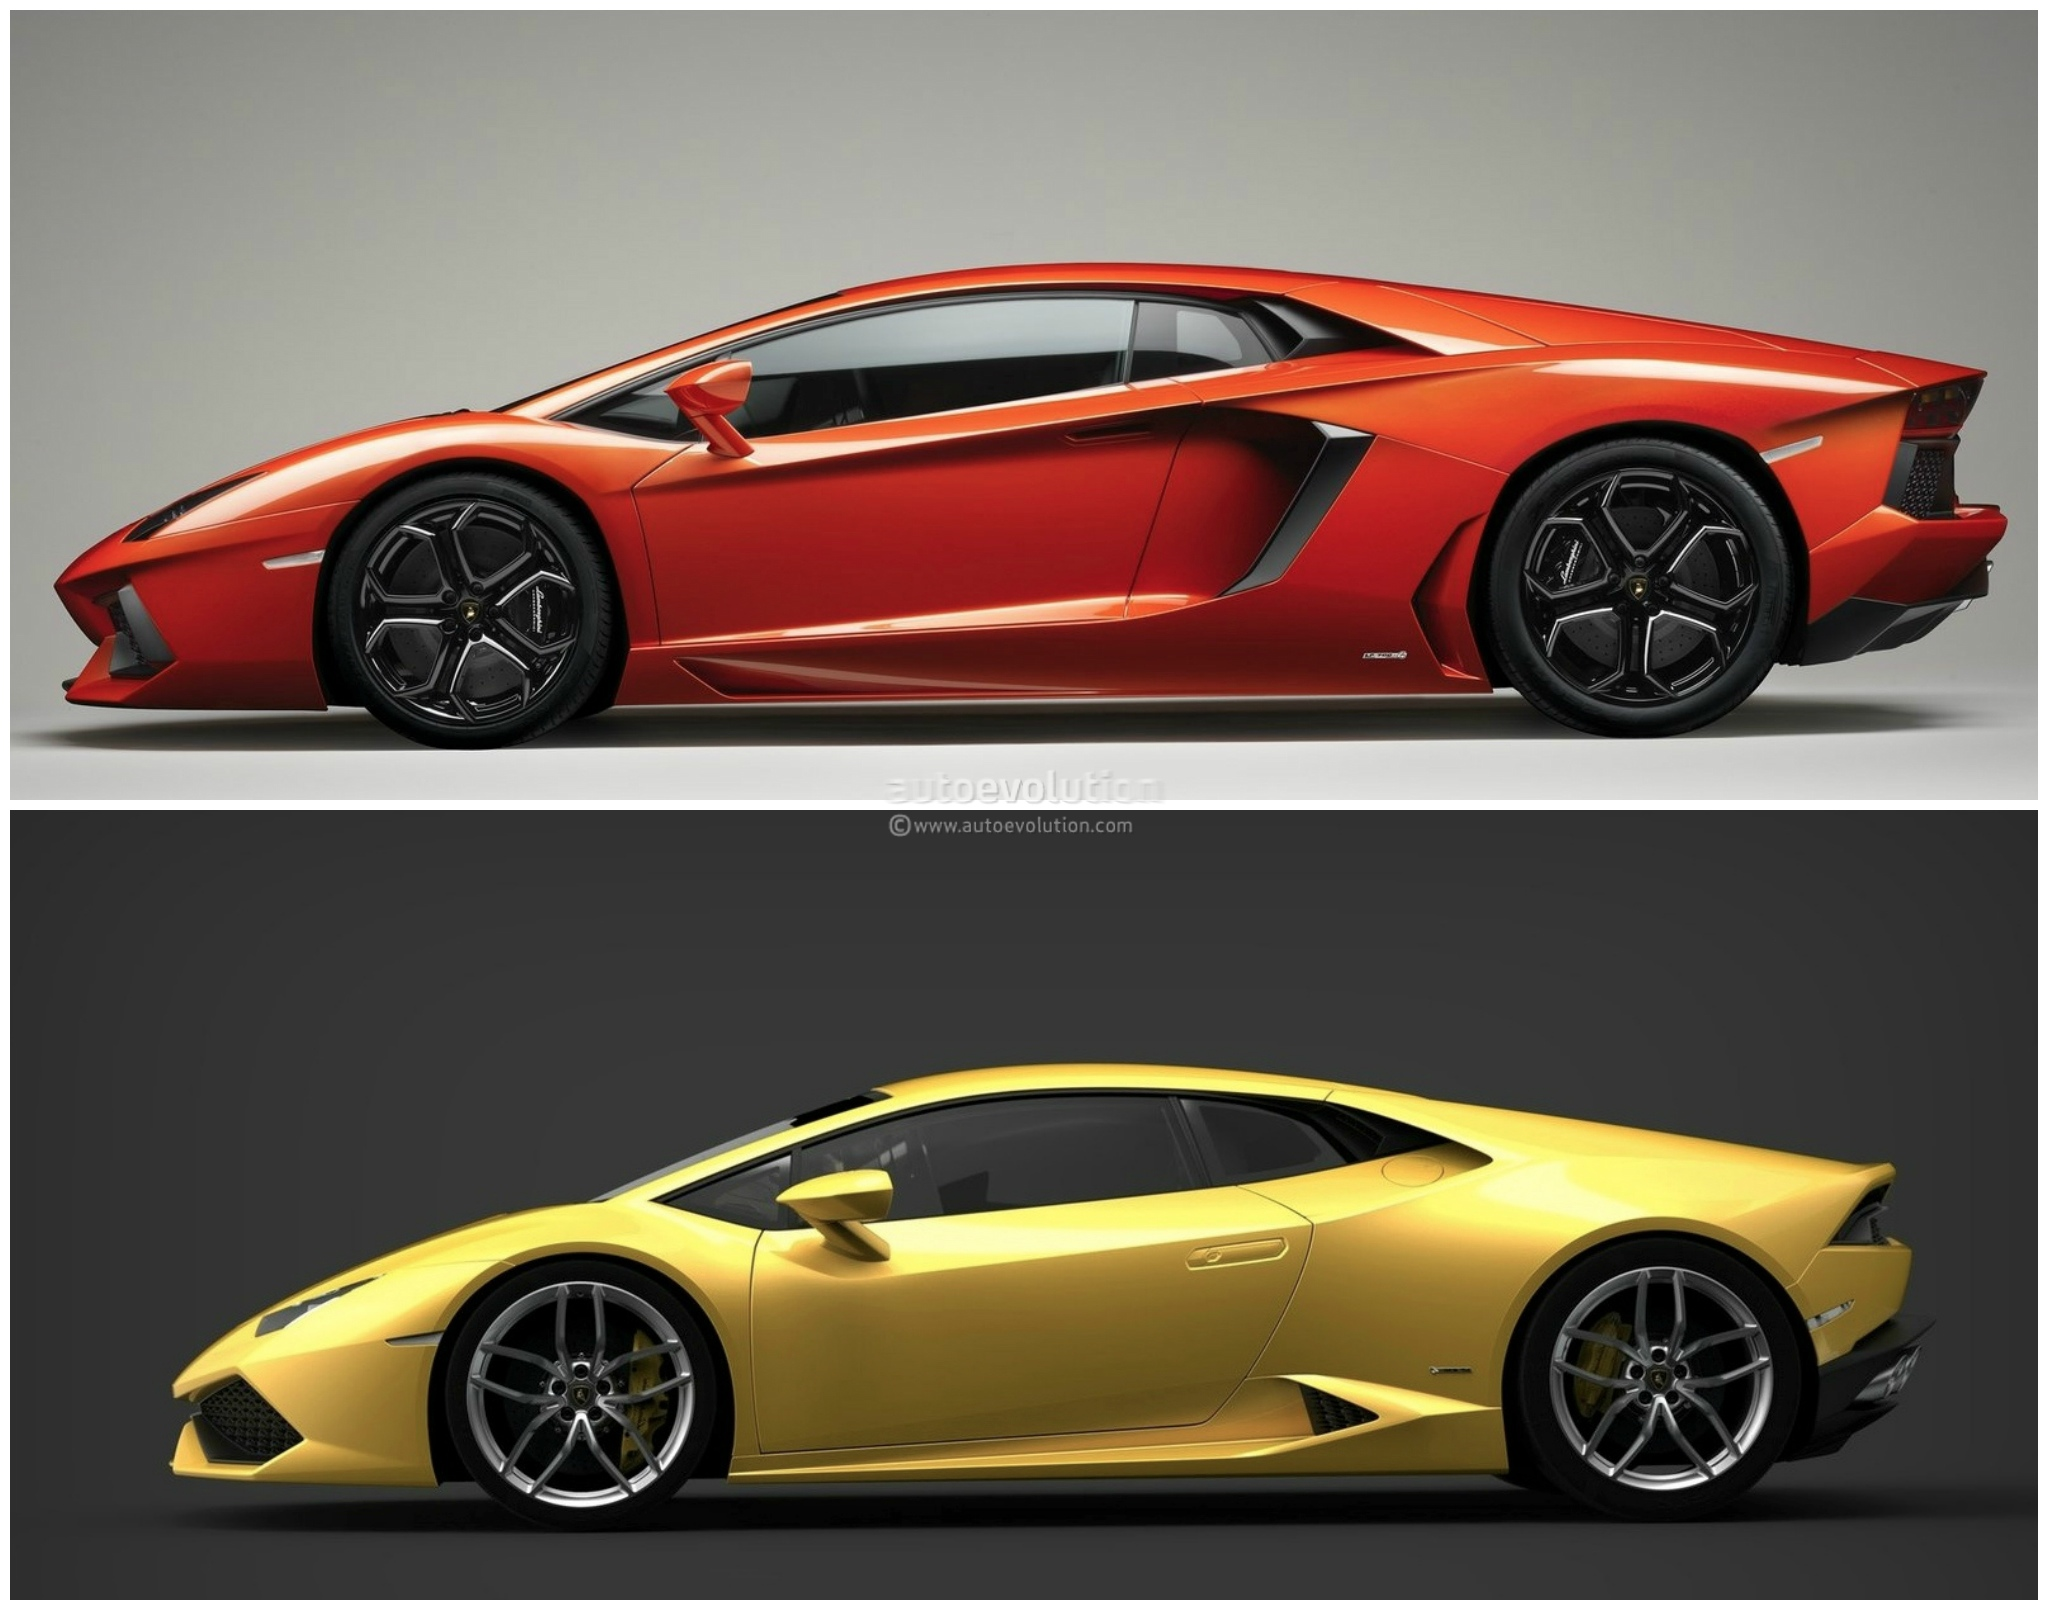 image gallery lamborghini gallardo vs huracan. Black Bedroom Furniture Sets. Home Design Ideas